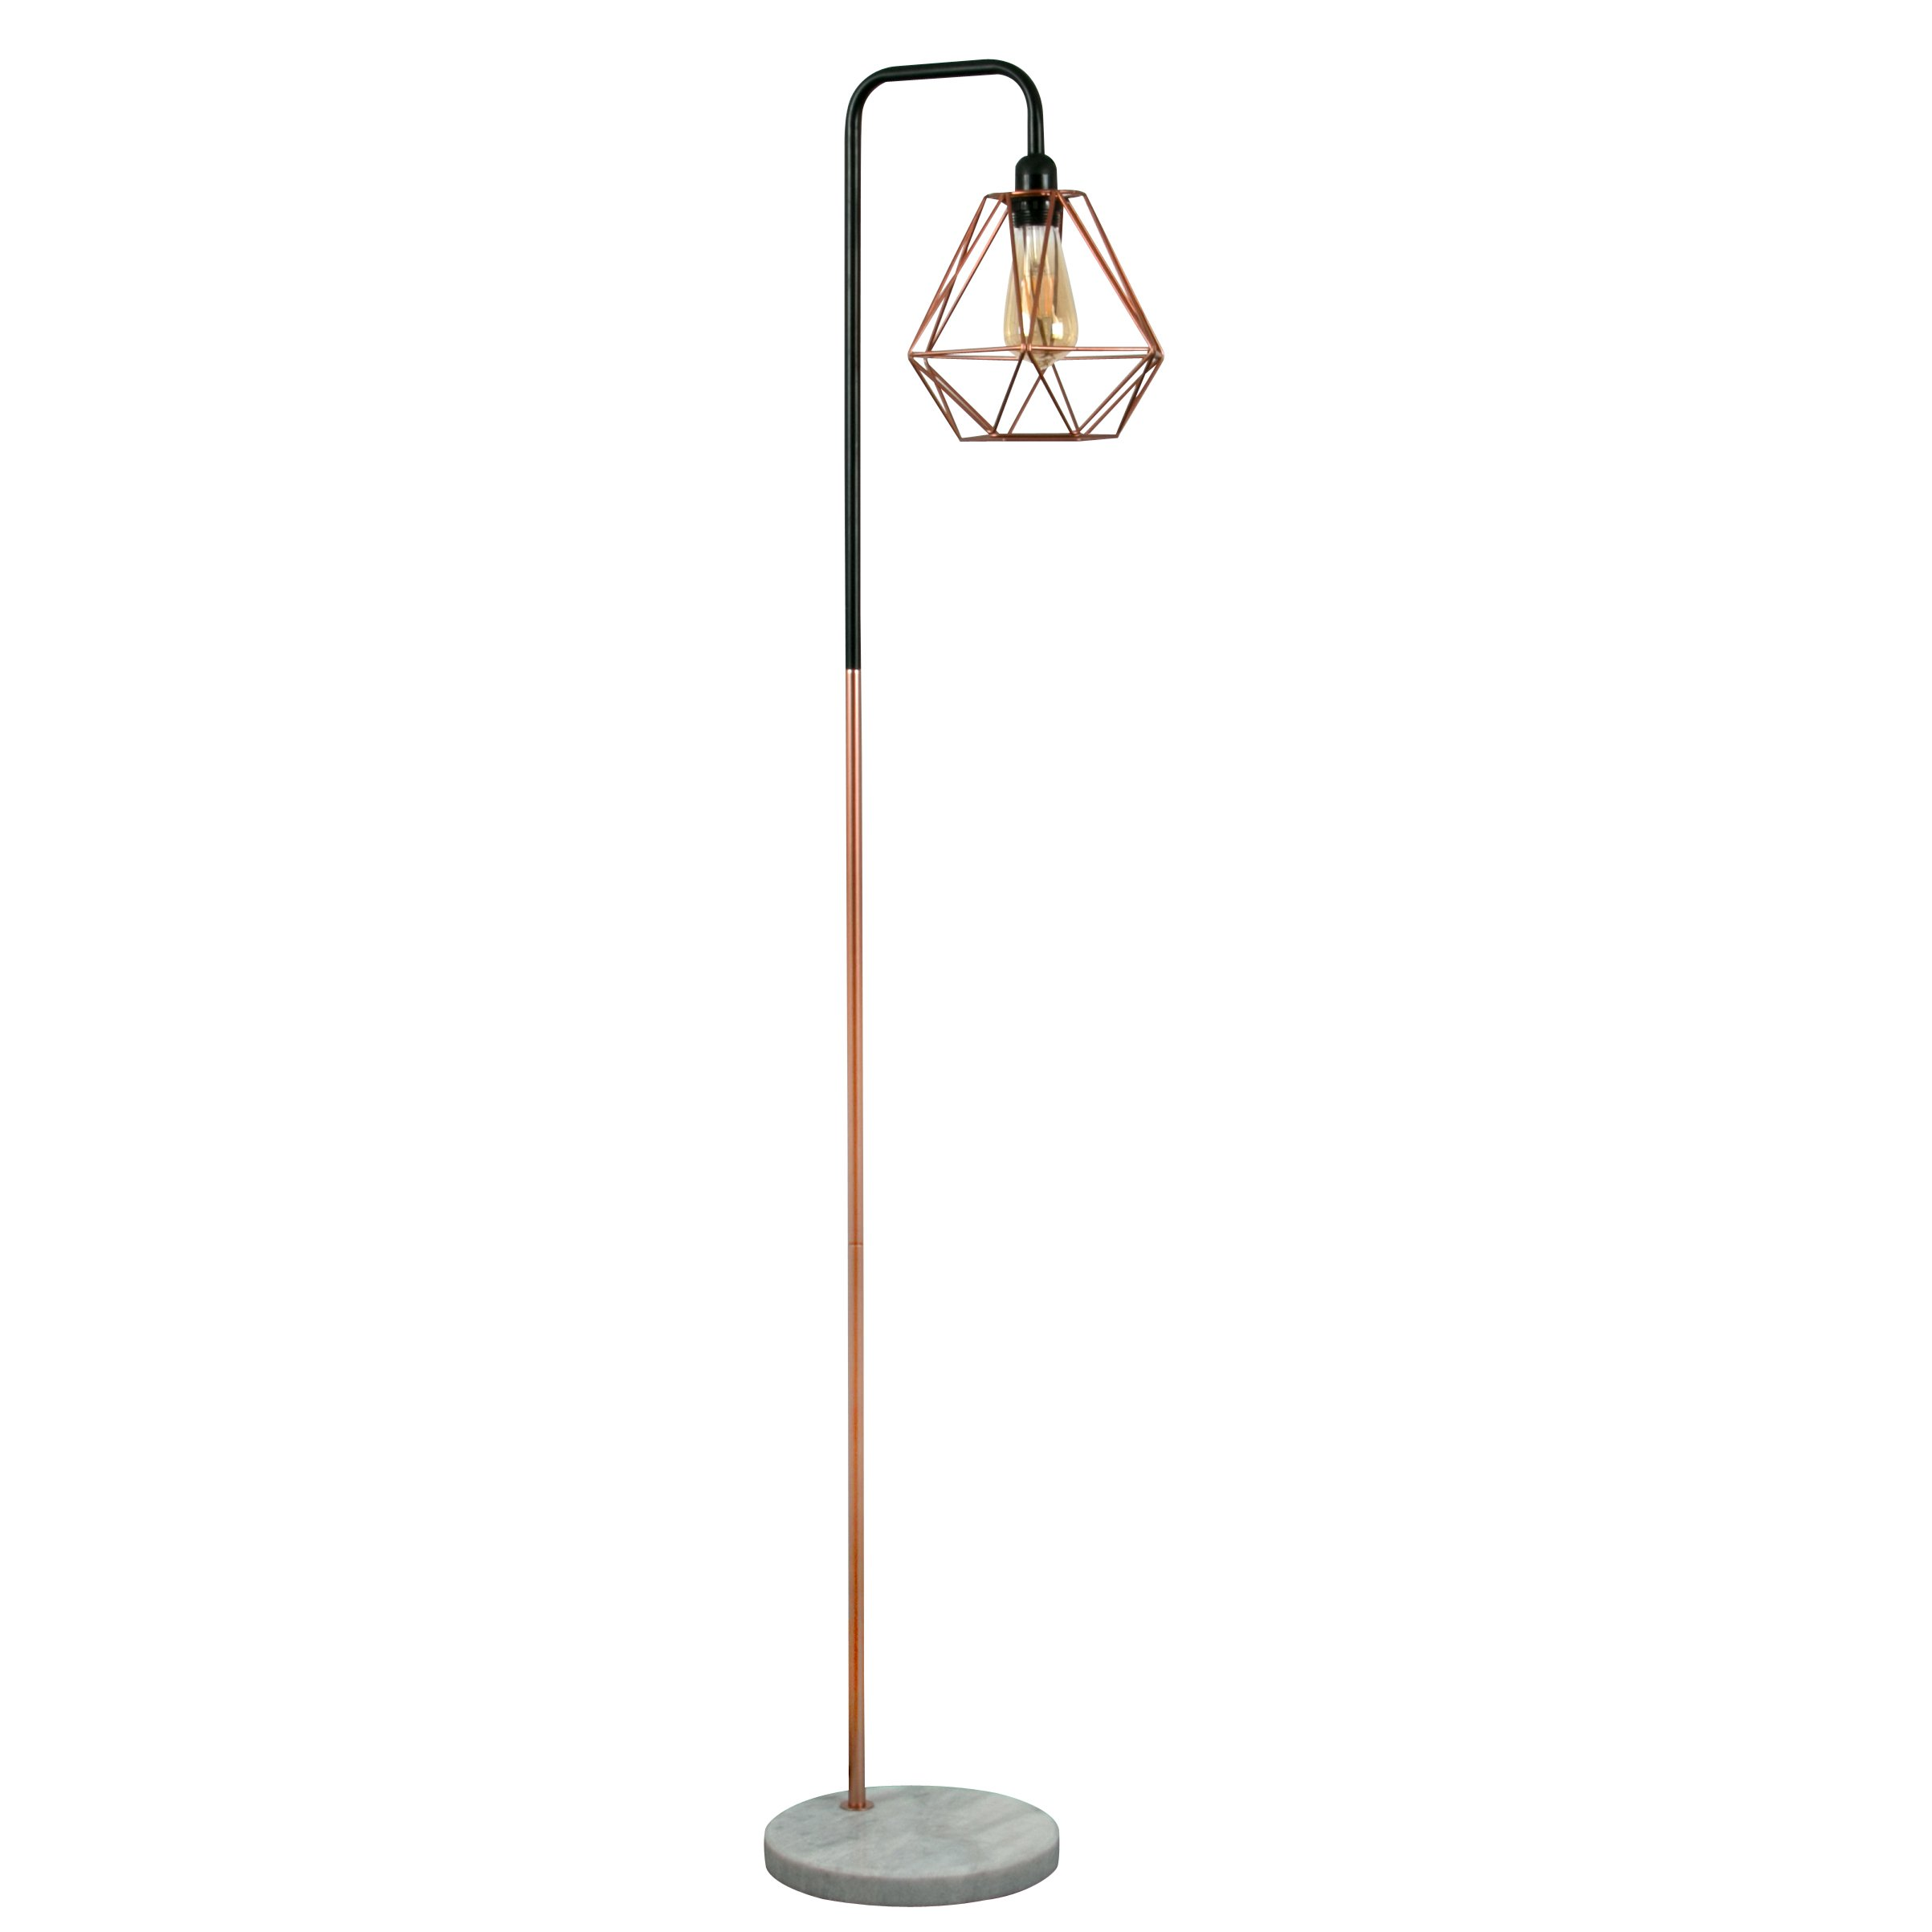 Copper floor lamps amazon retro style black copper metal white marble base floor lamp complete with a aloadofball Choice Image